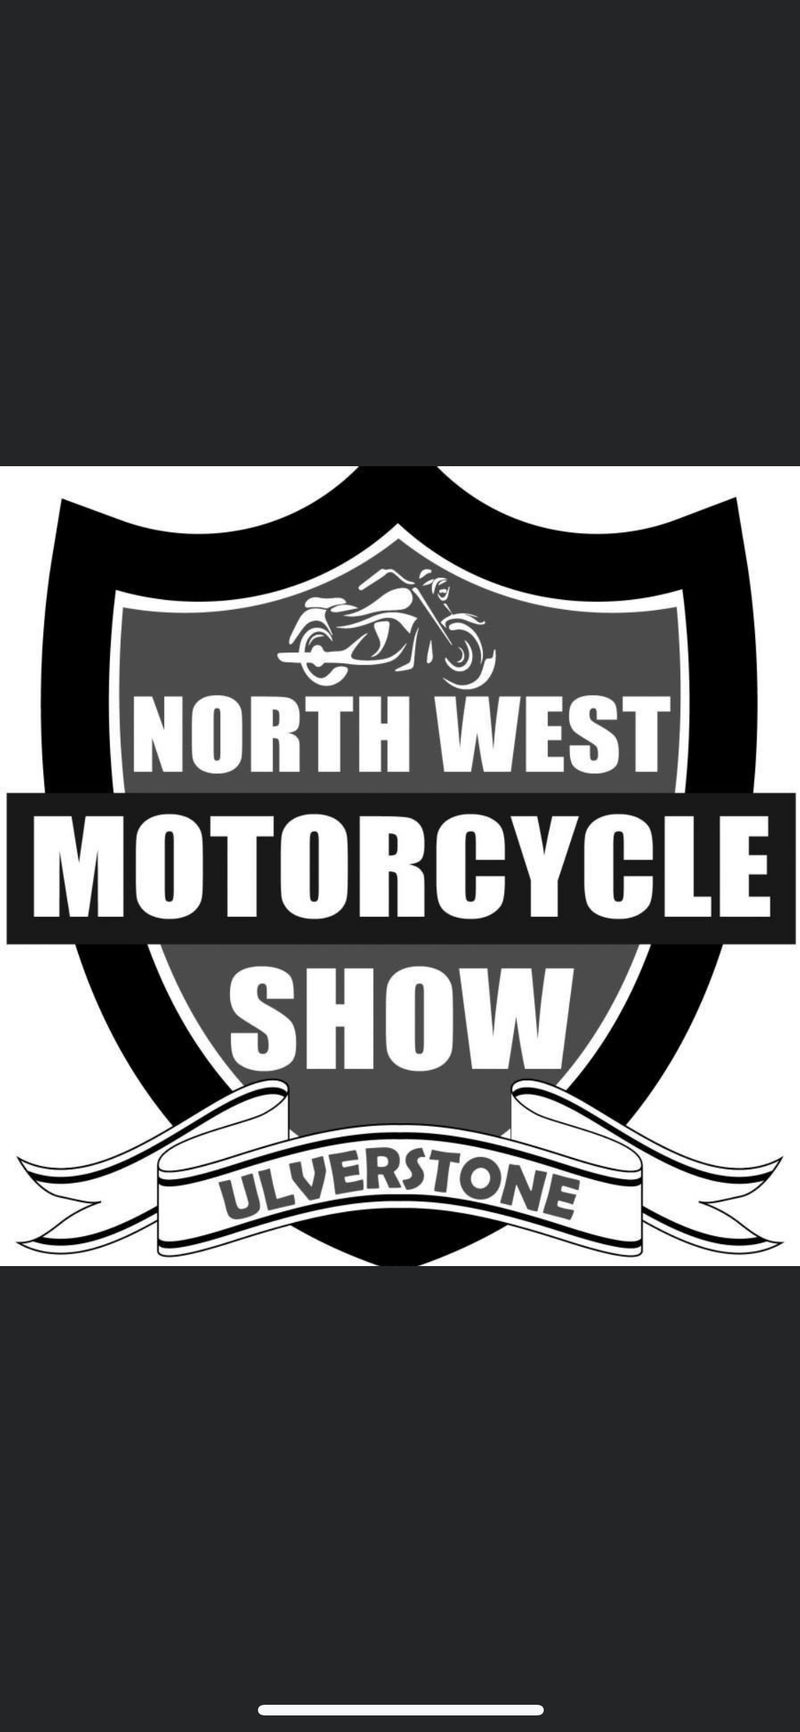 (North N/w) North west motorcycle show